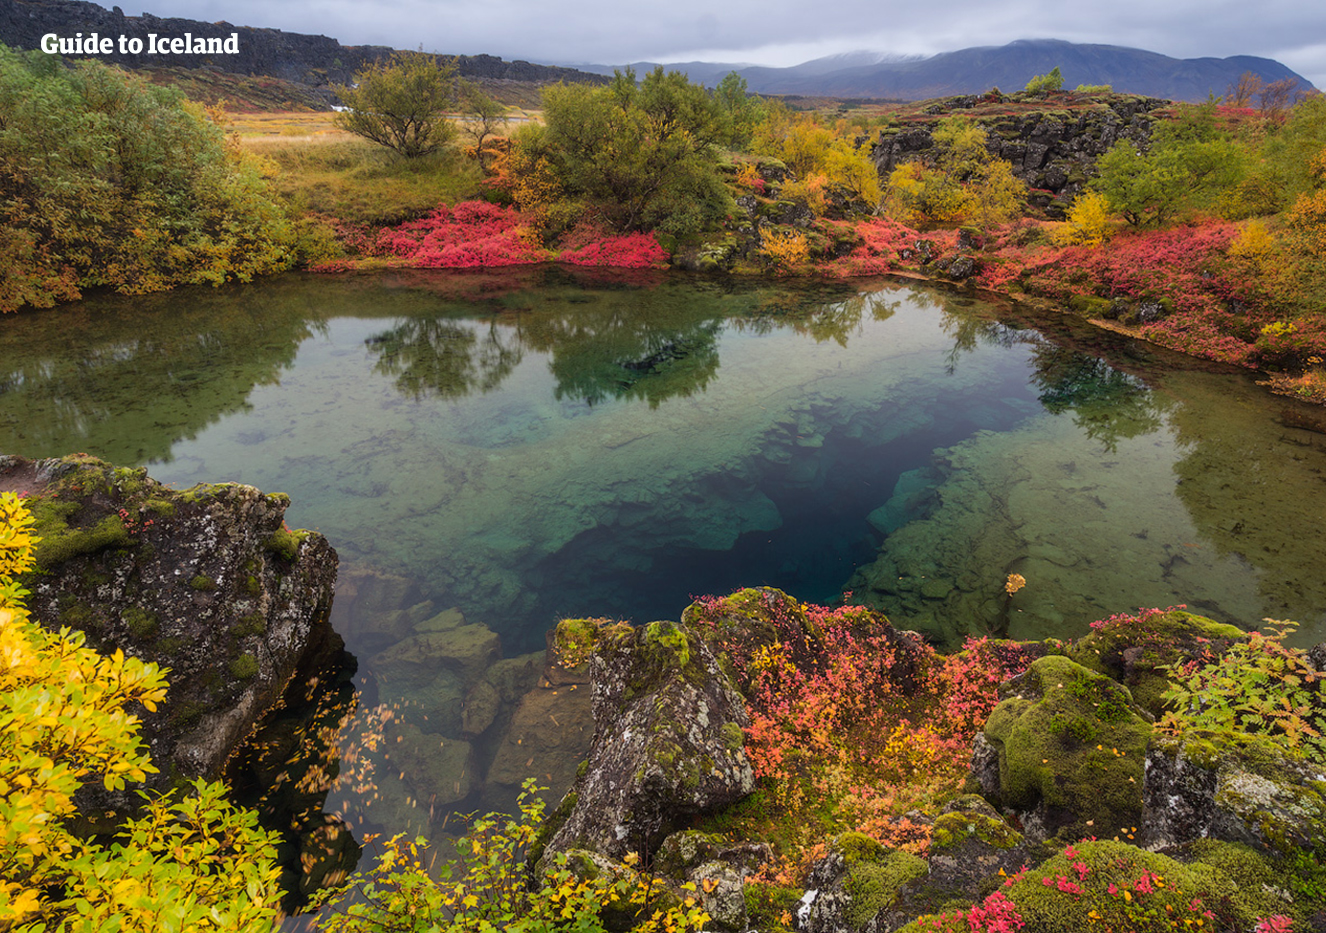 The clear waters of the Silfra Fissure in Thingvellir National Park on the Golden Circle Tourist Route of Iceland.